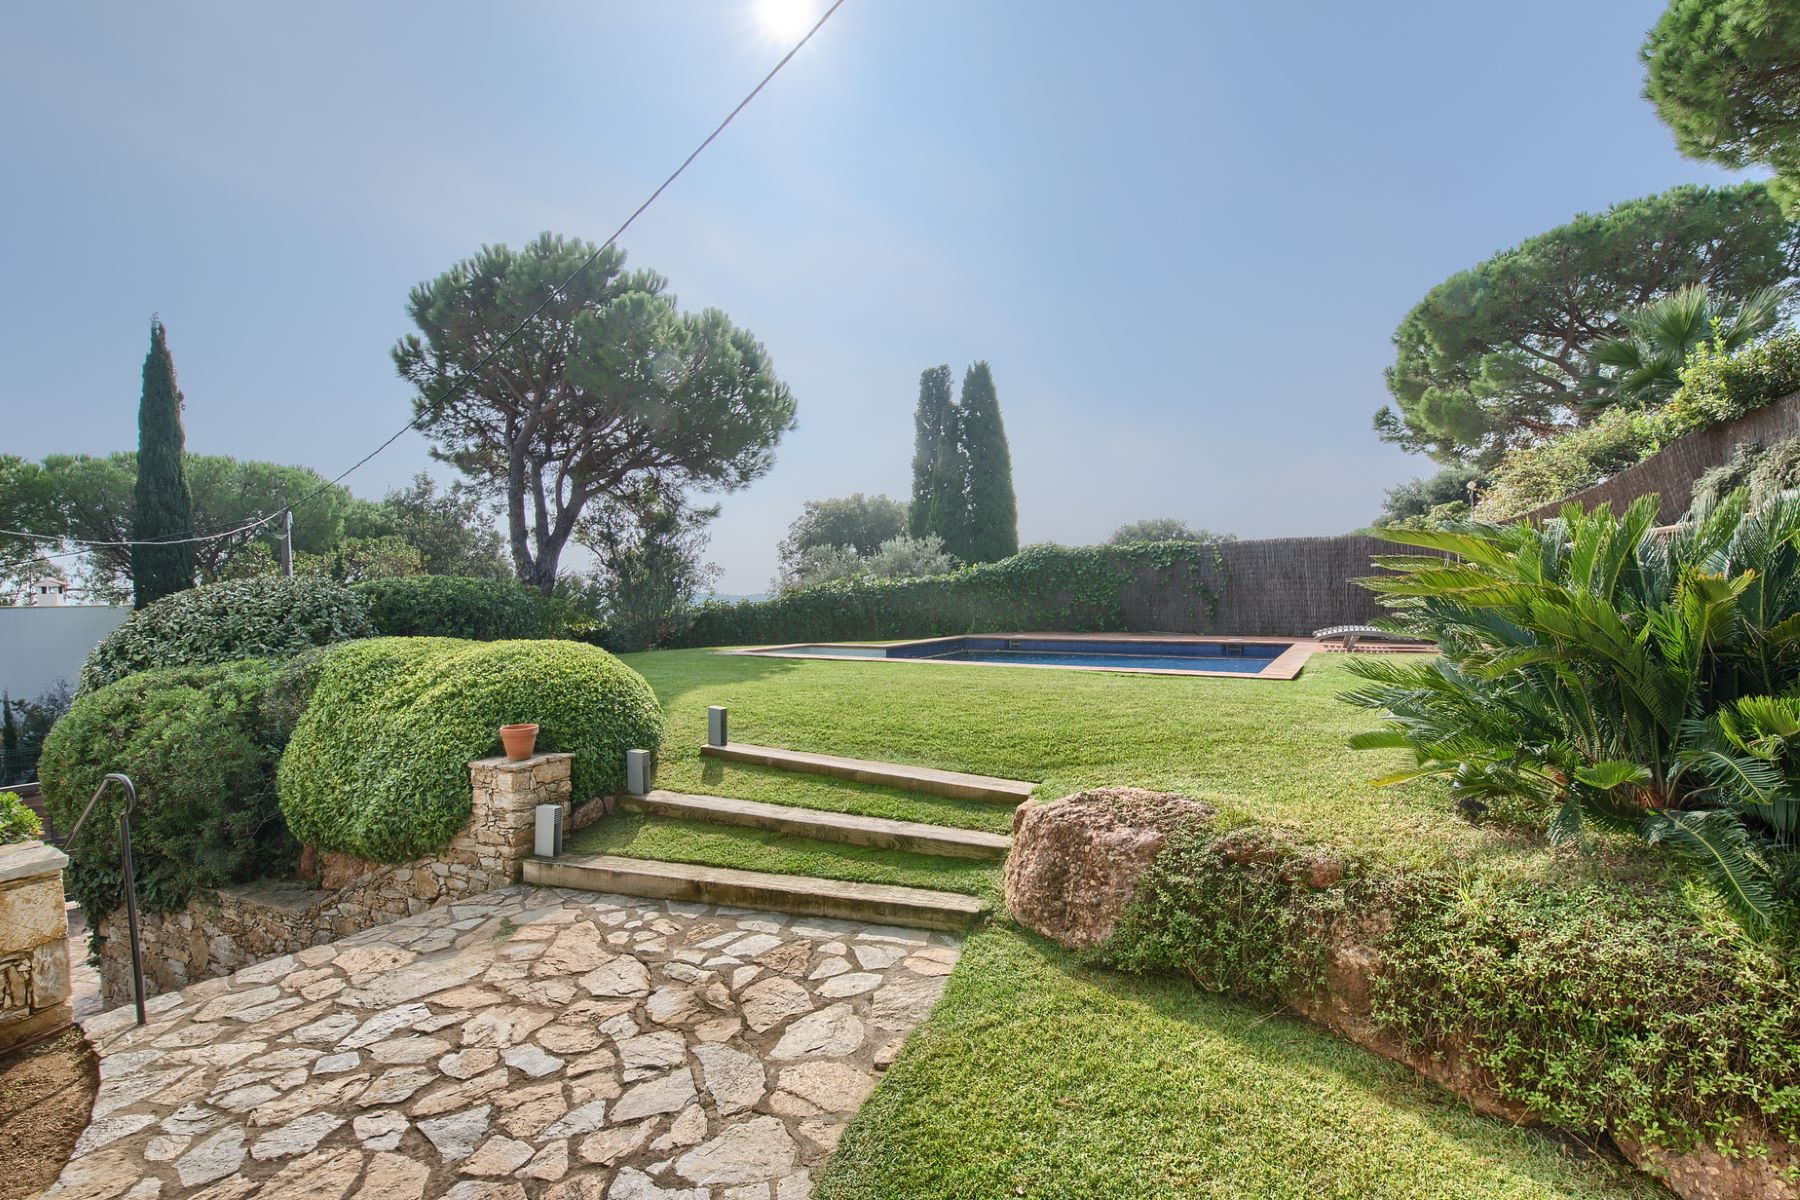 Single Family Home for Sale at Beautiful house in a residential area with nice views Begur, Costa Brava, 17255 Spain